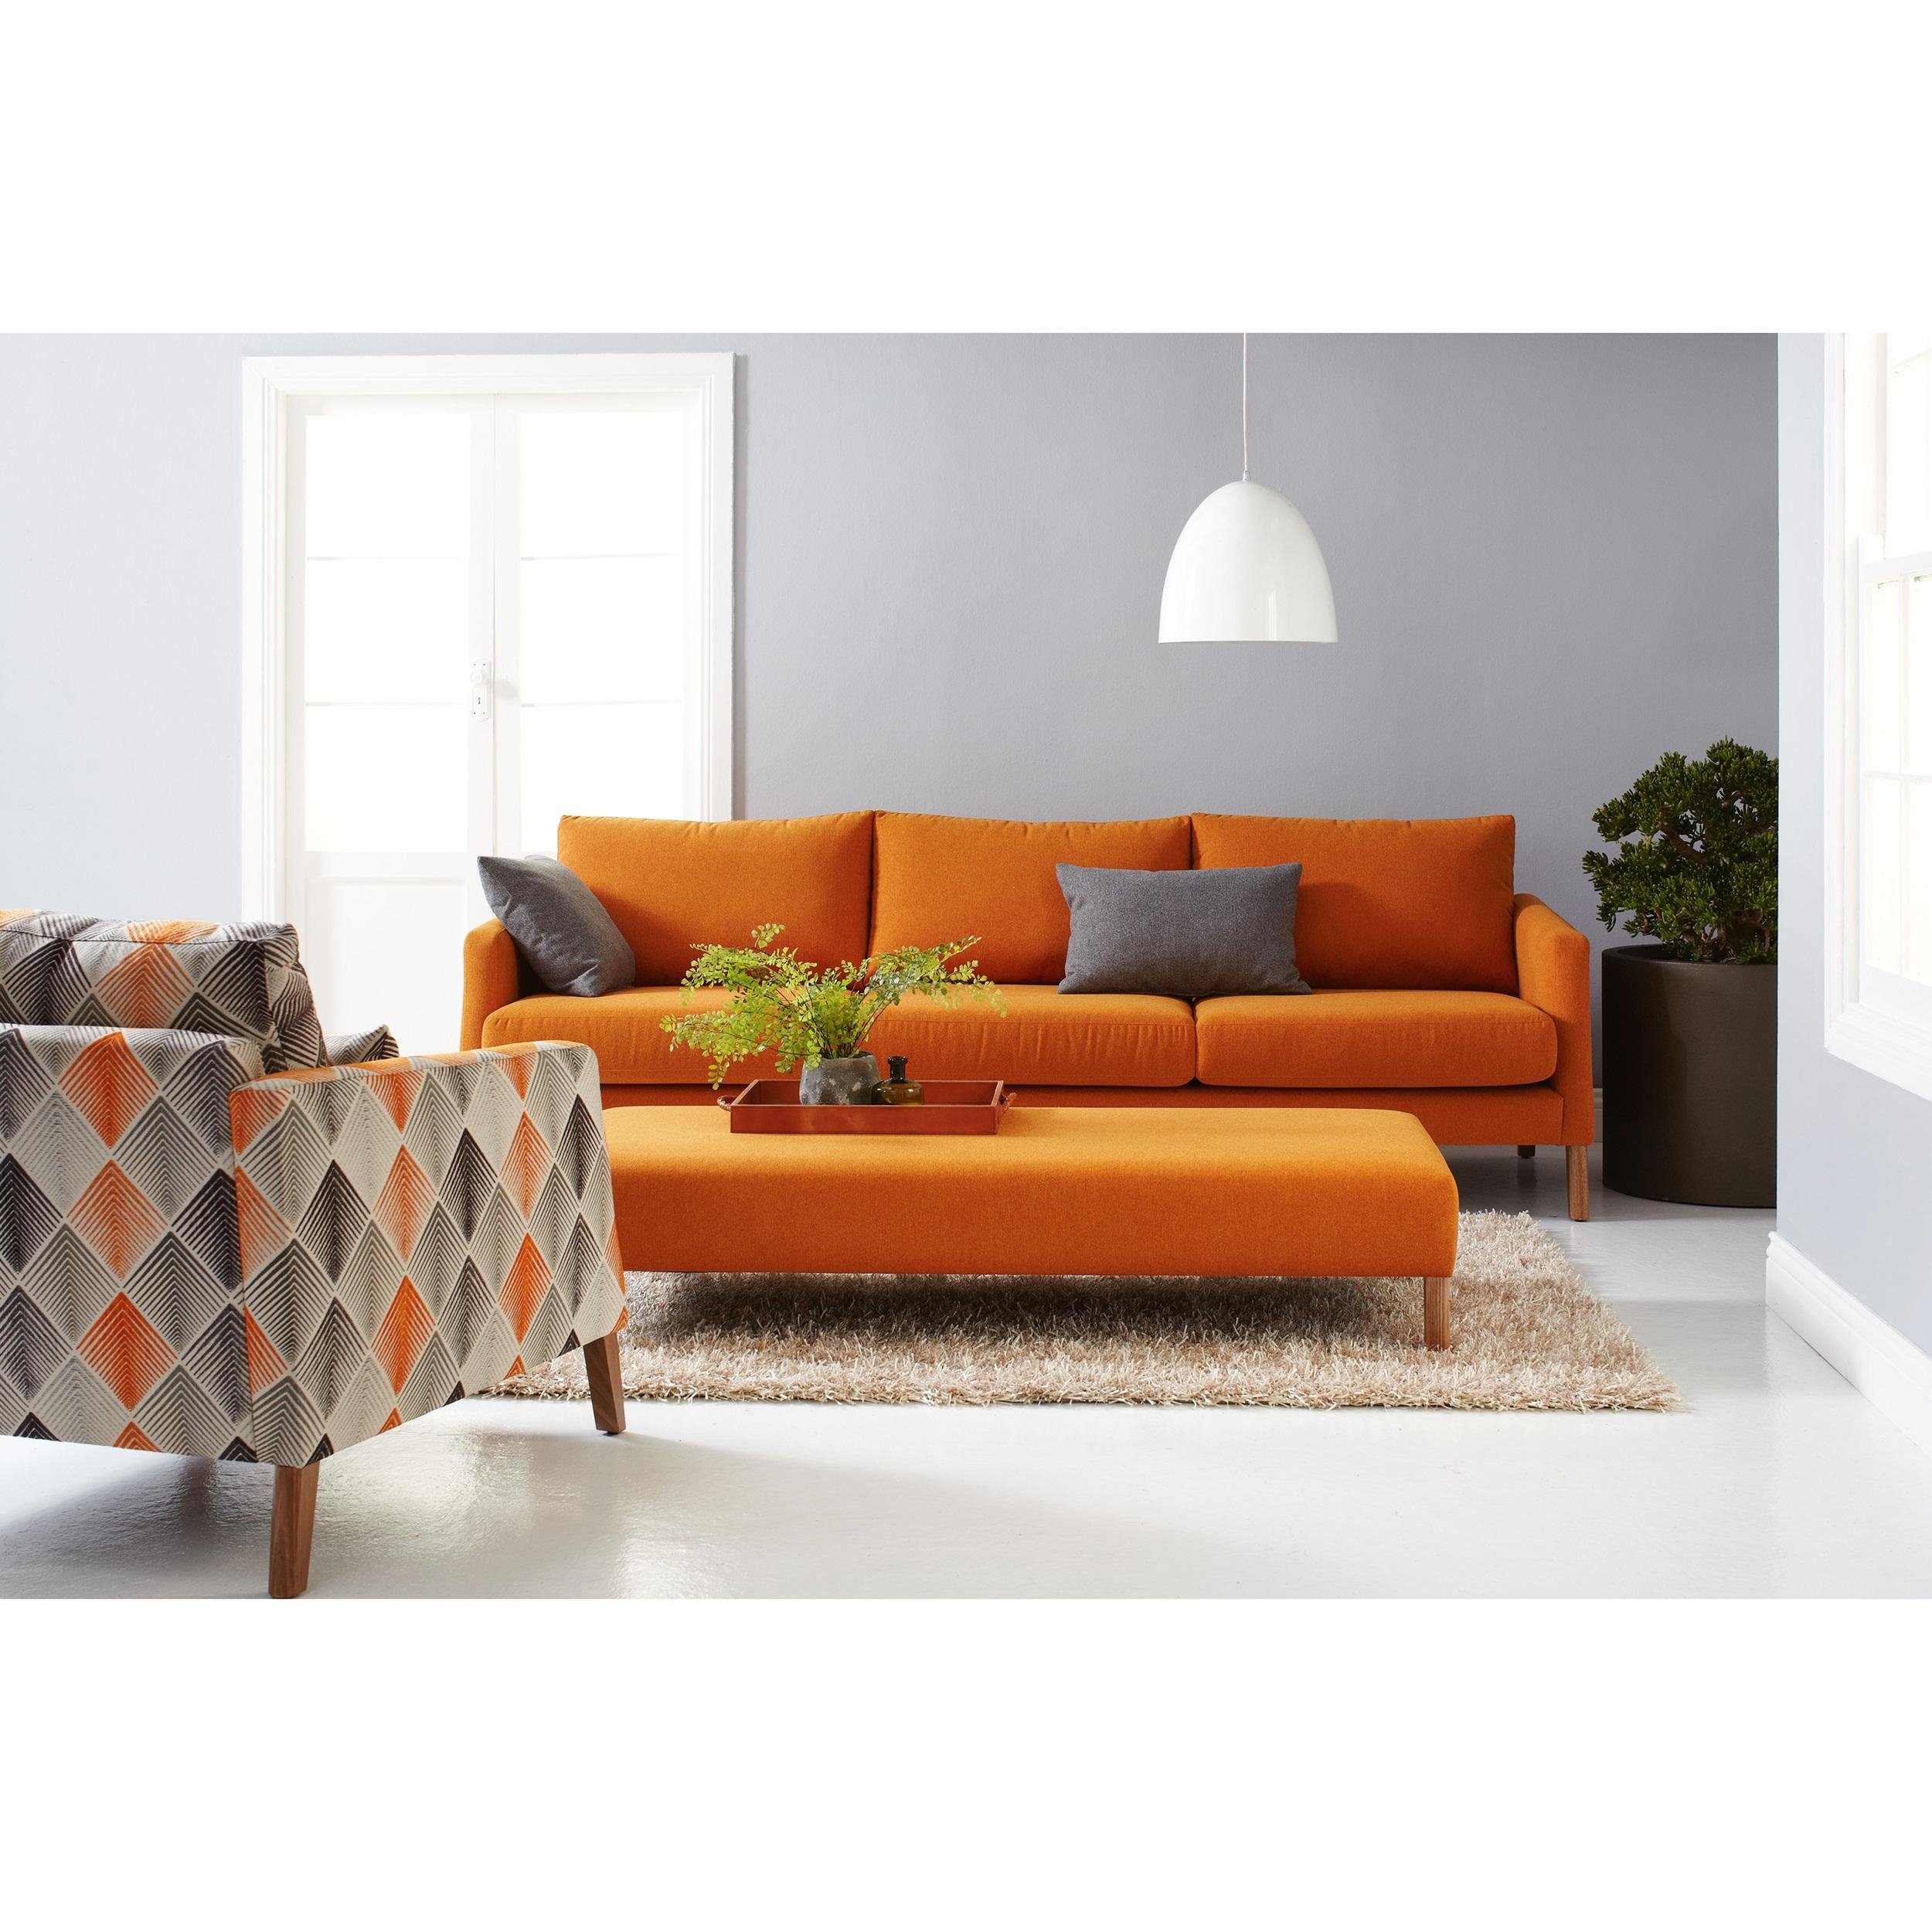 Orange Sofa Interior Design Amazing Modern Sectional Sofa (Image 18 of 20)